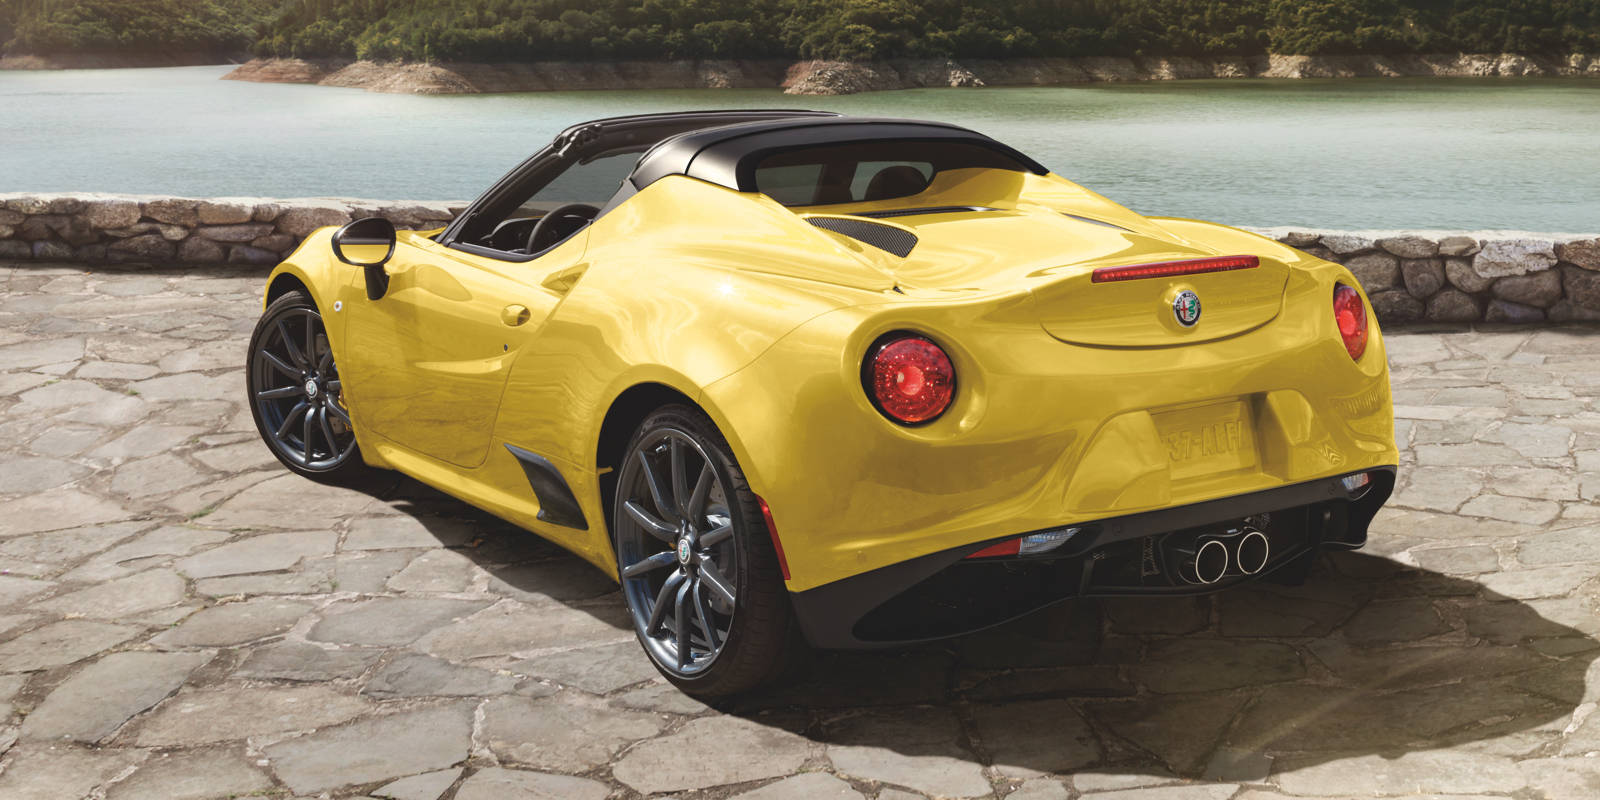 2018 alfa romeo spider specs release date price engine. Black Bedroom Furniture Sets. Home Design Ideas